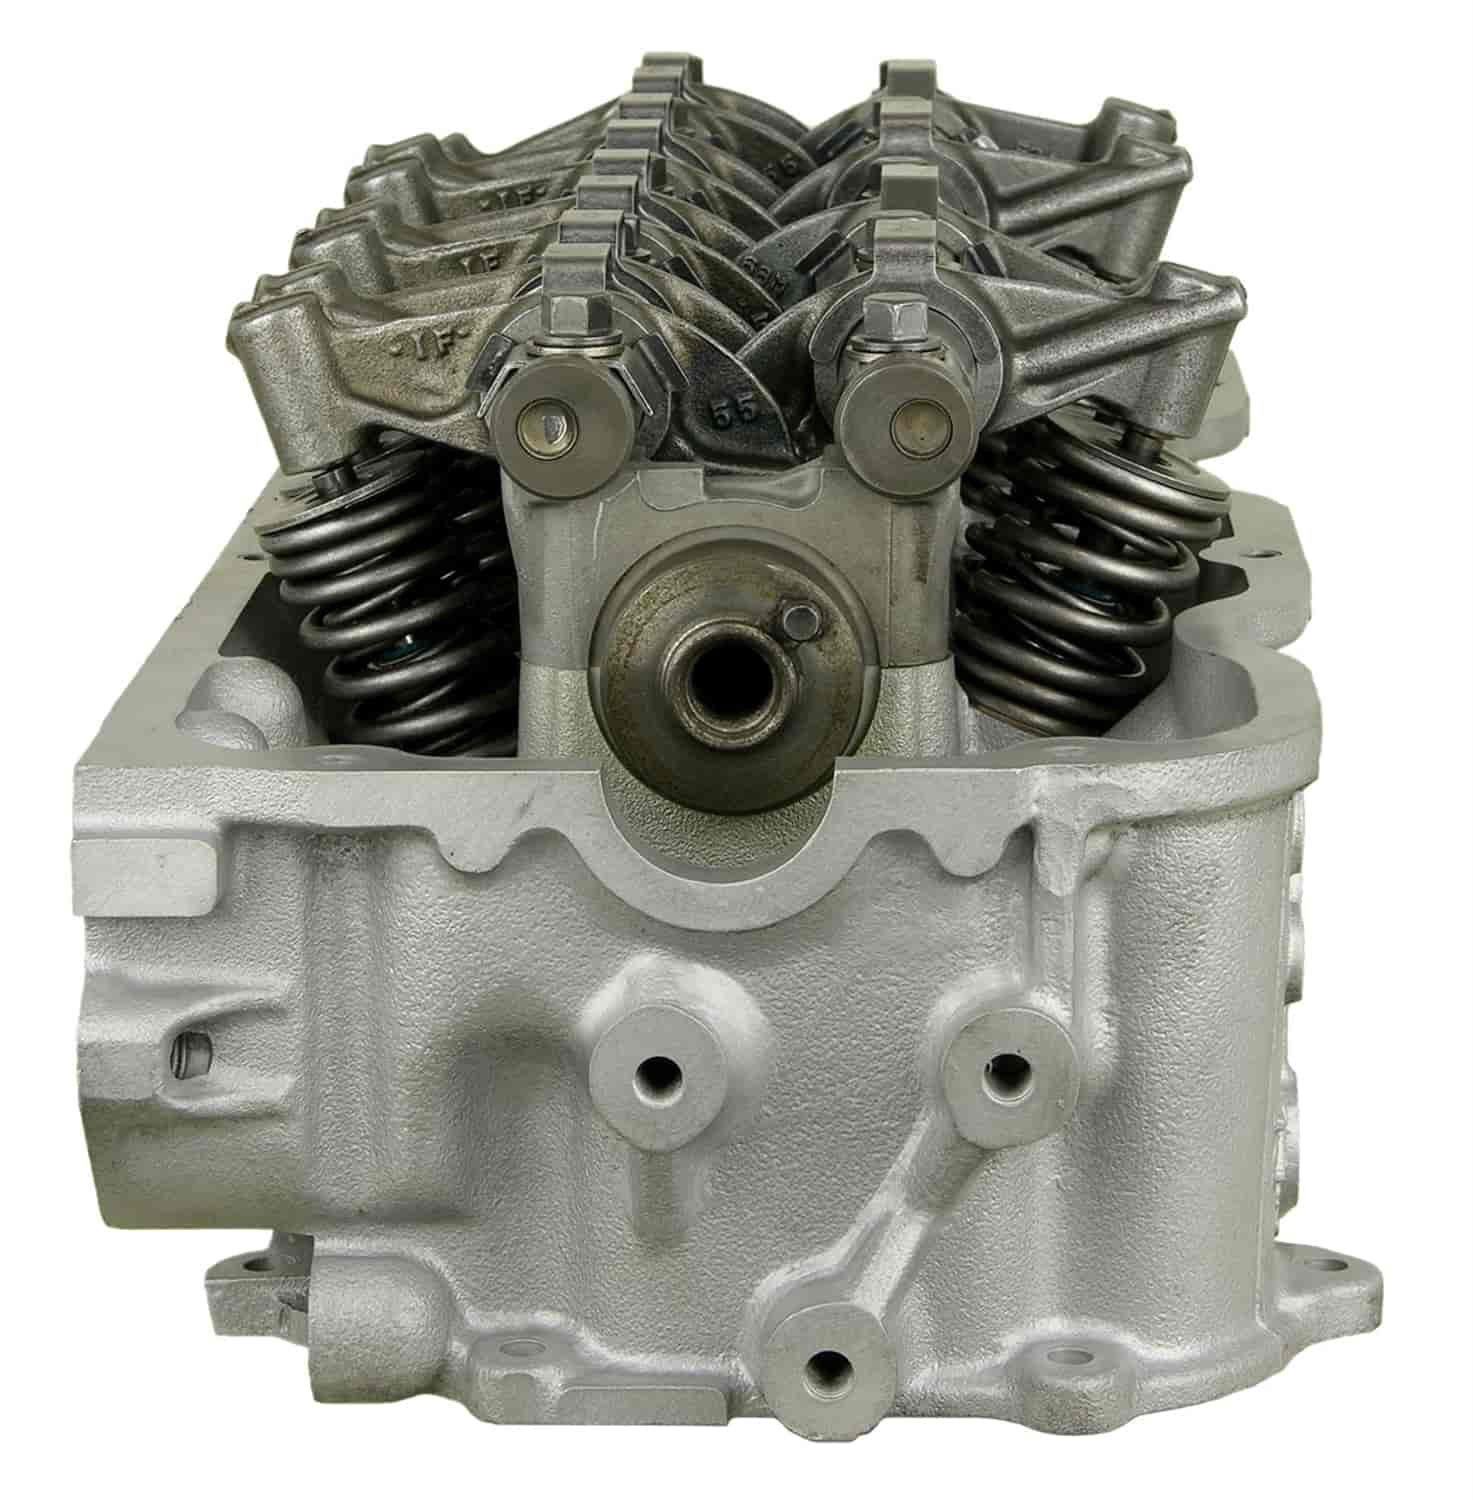 ATK Engines Remanufactured Cylinder Head for 1992-1997 Nissan with on sr20det wiring harness, nissan wiring harness, d15b2 wiring harness, vq35de wiring harness, radio wiring harness, s13 wiring harness, rb20det wiring harness, international truck wiring harness, d15b7 wiring harness, chinese atv wiring harness, engine wiring harness, hks wiring harness, trailer wiring harness, boat wiring harness, auto electrical wiring harness, l28e wiring harness, eg wiring harness, ka24de wiring harness, greddy wiring harness, ecu wiring harness,